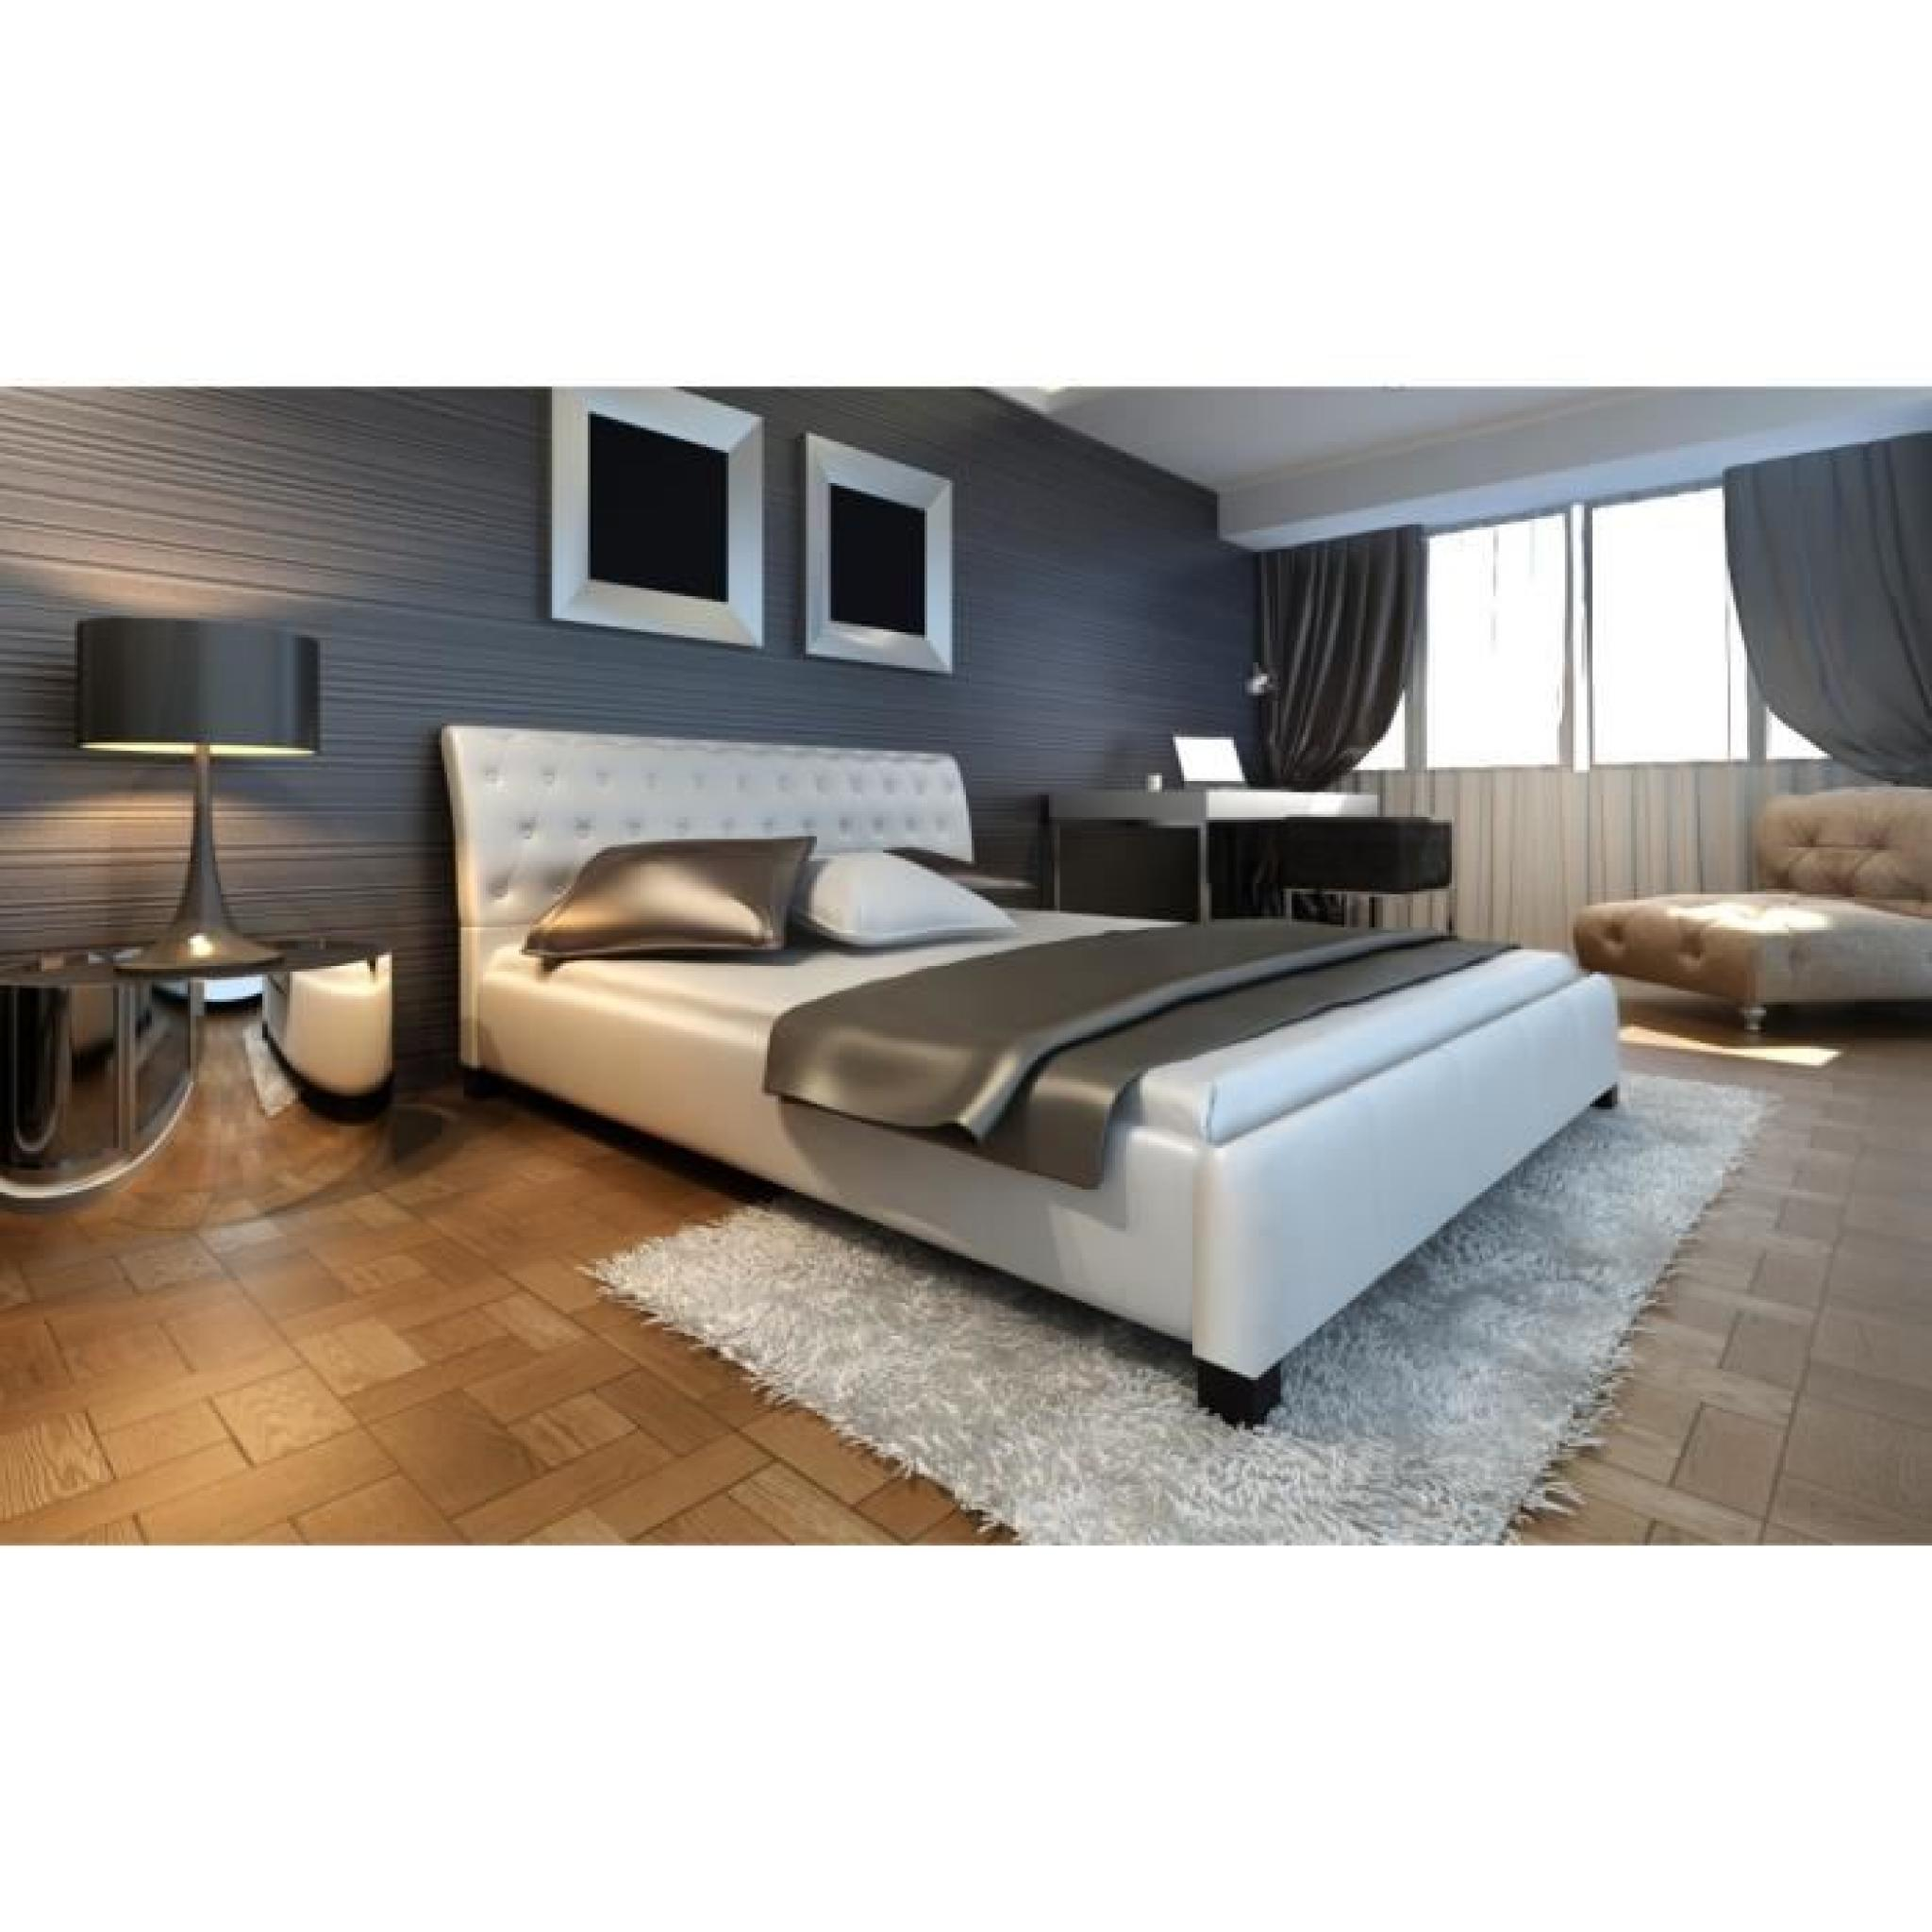 lit en cuir 140 200 cm blanc moderne lit double achat. Black Bedroom Furniture Sets. Home Design Ideas